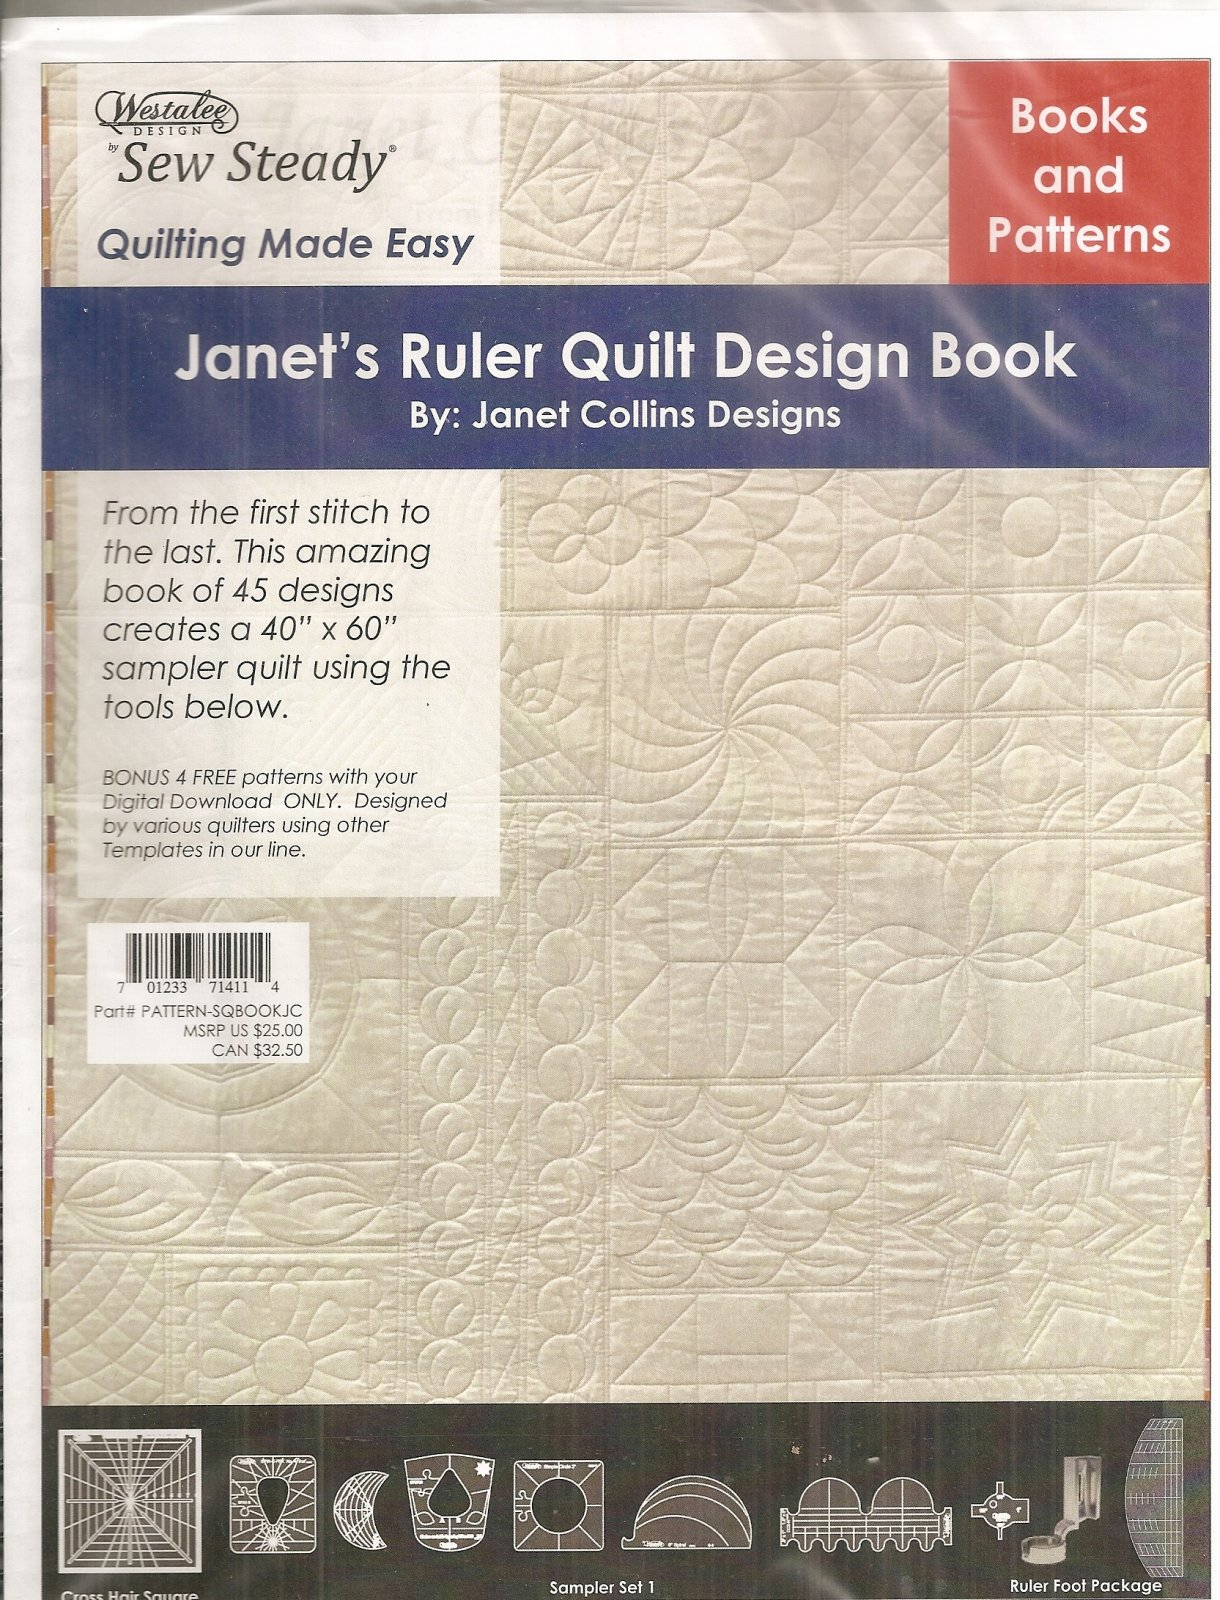 Janets Ruler Quilt Design Book 701233714114